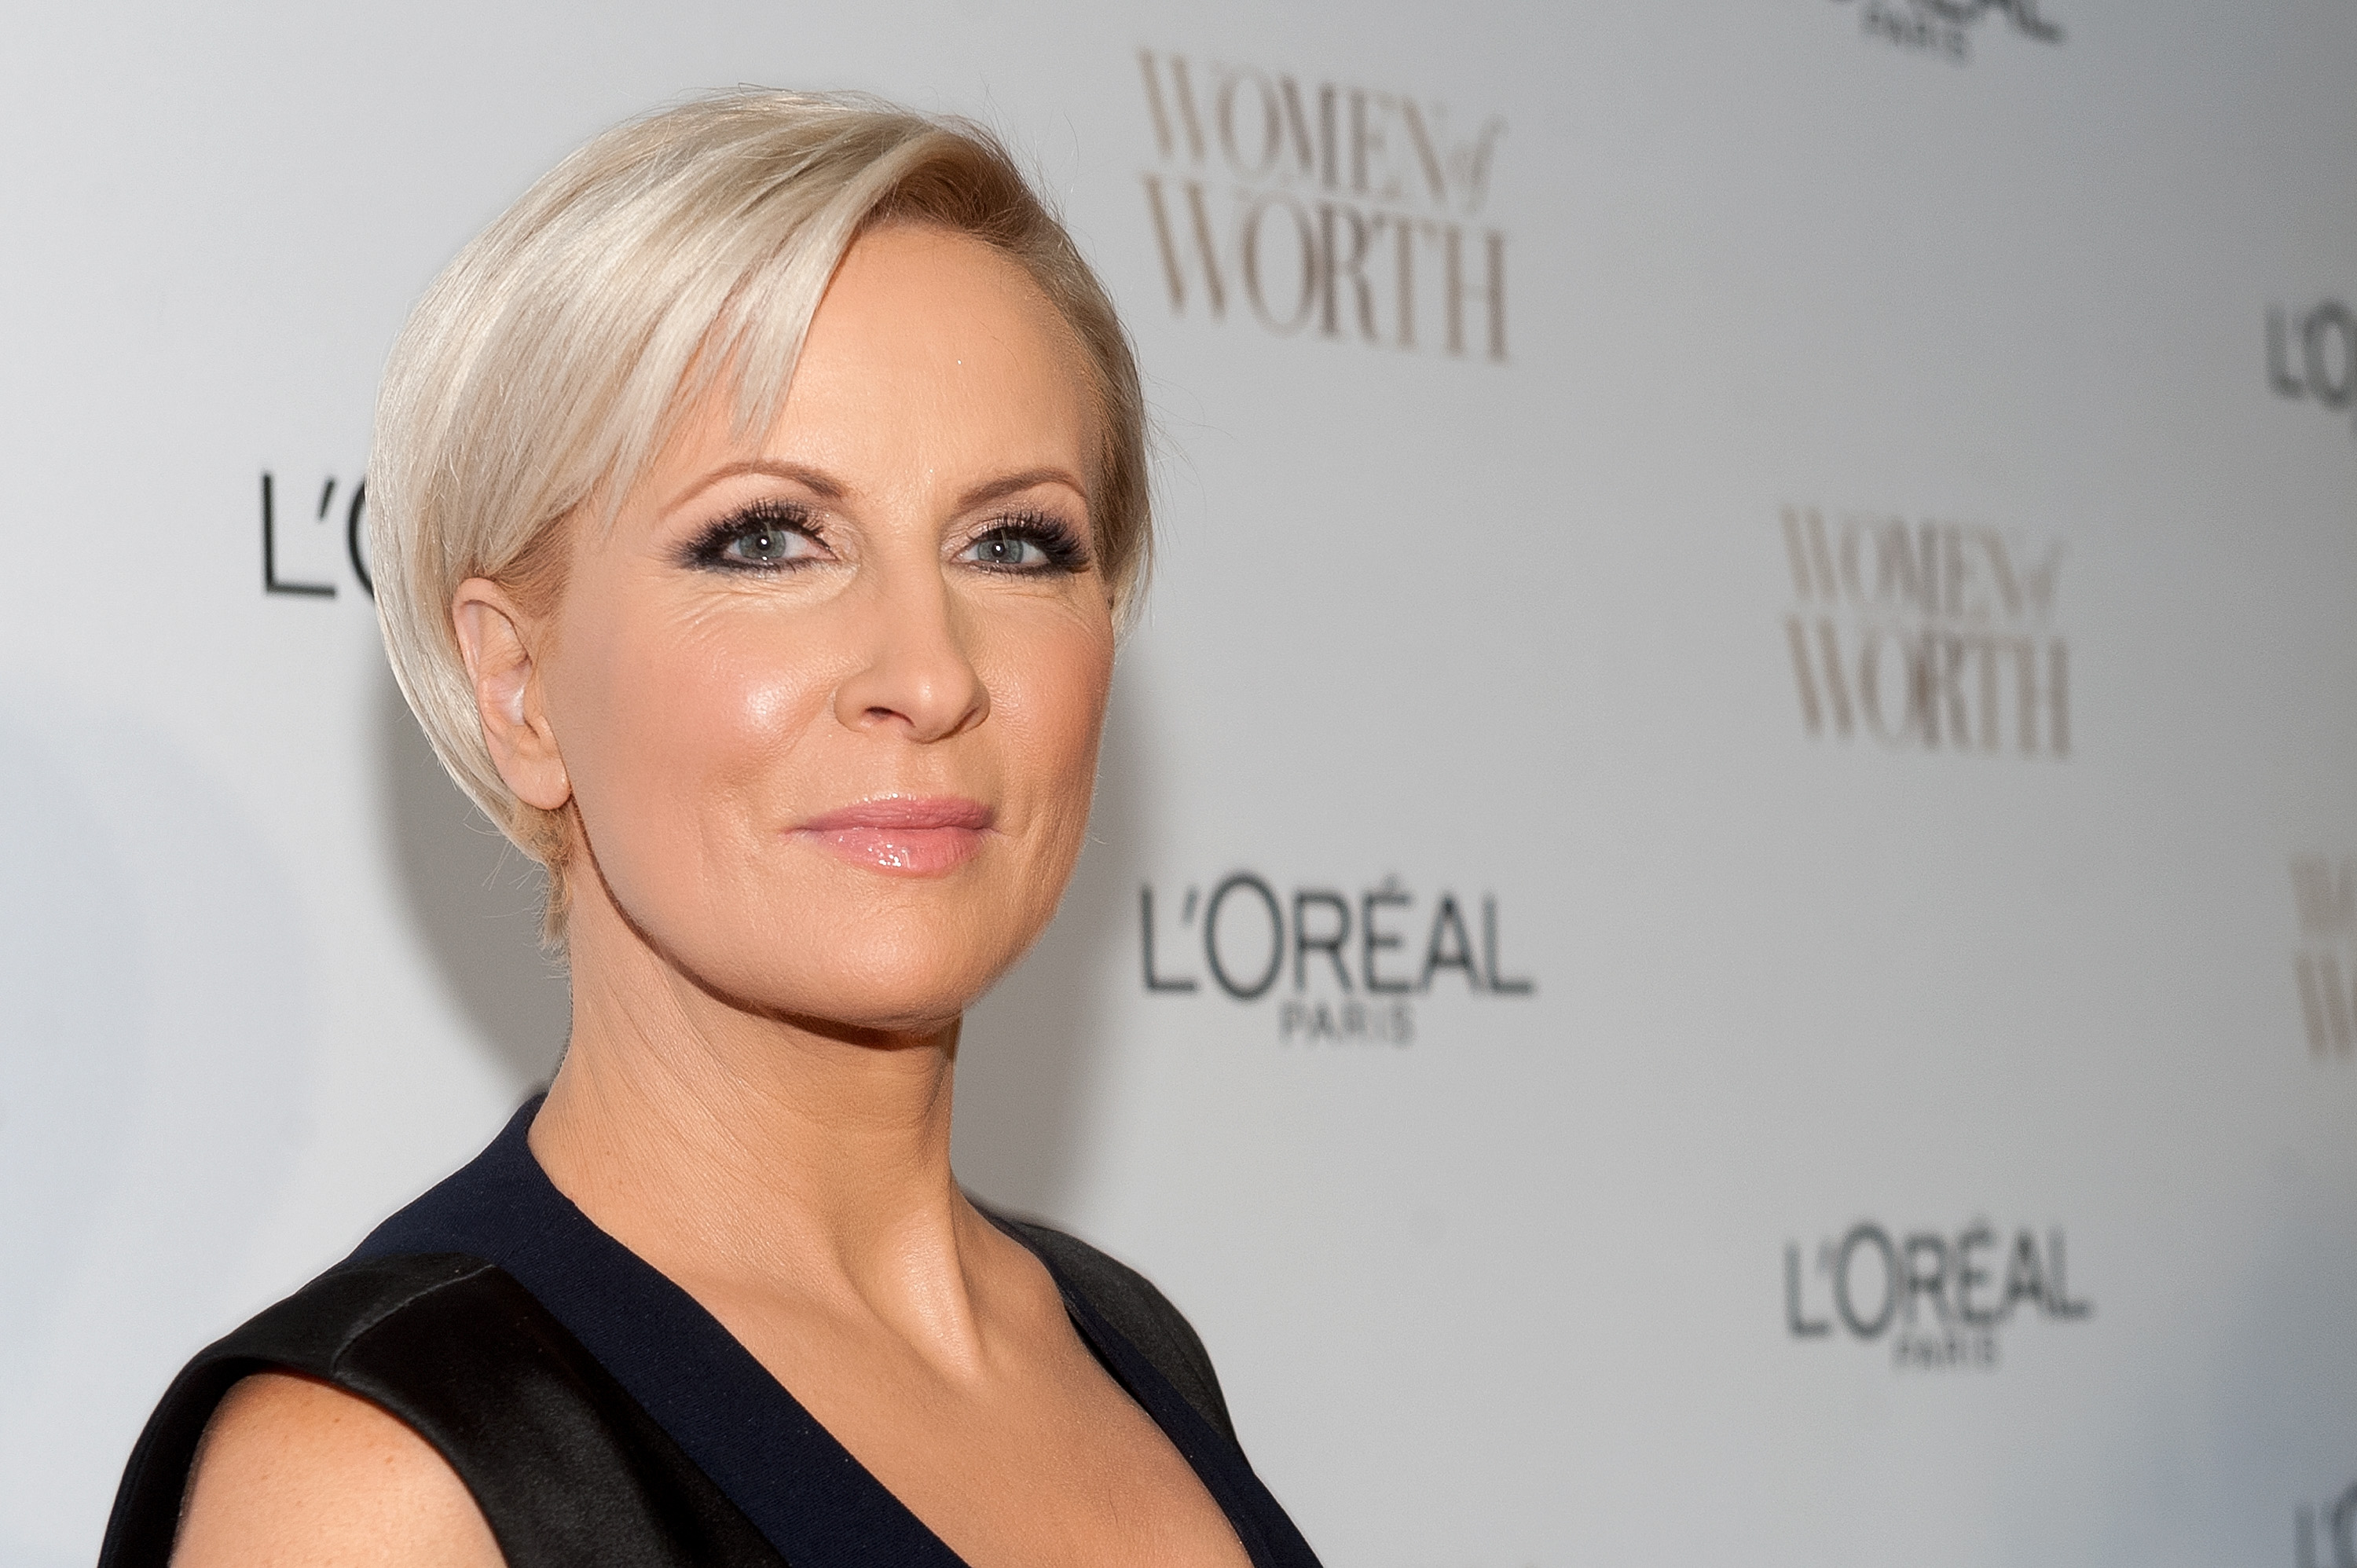 NEW YORK, NY - DECEMBER 02:  Mika Brzezinski attends L'Oreal Paris' Ninth Annual Women of Worth Awards at The Pierre Hotel on December 2, 2014 in New York City.  (Photo by D Dipasupil/FilmMagic)